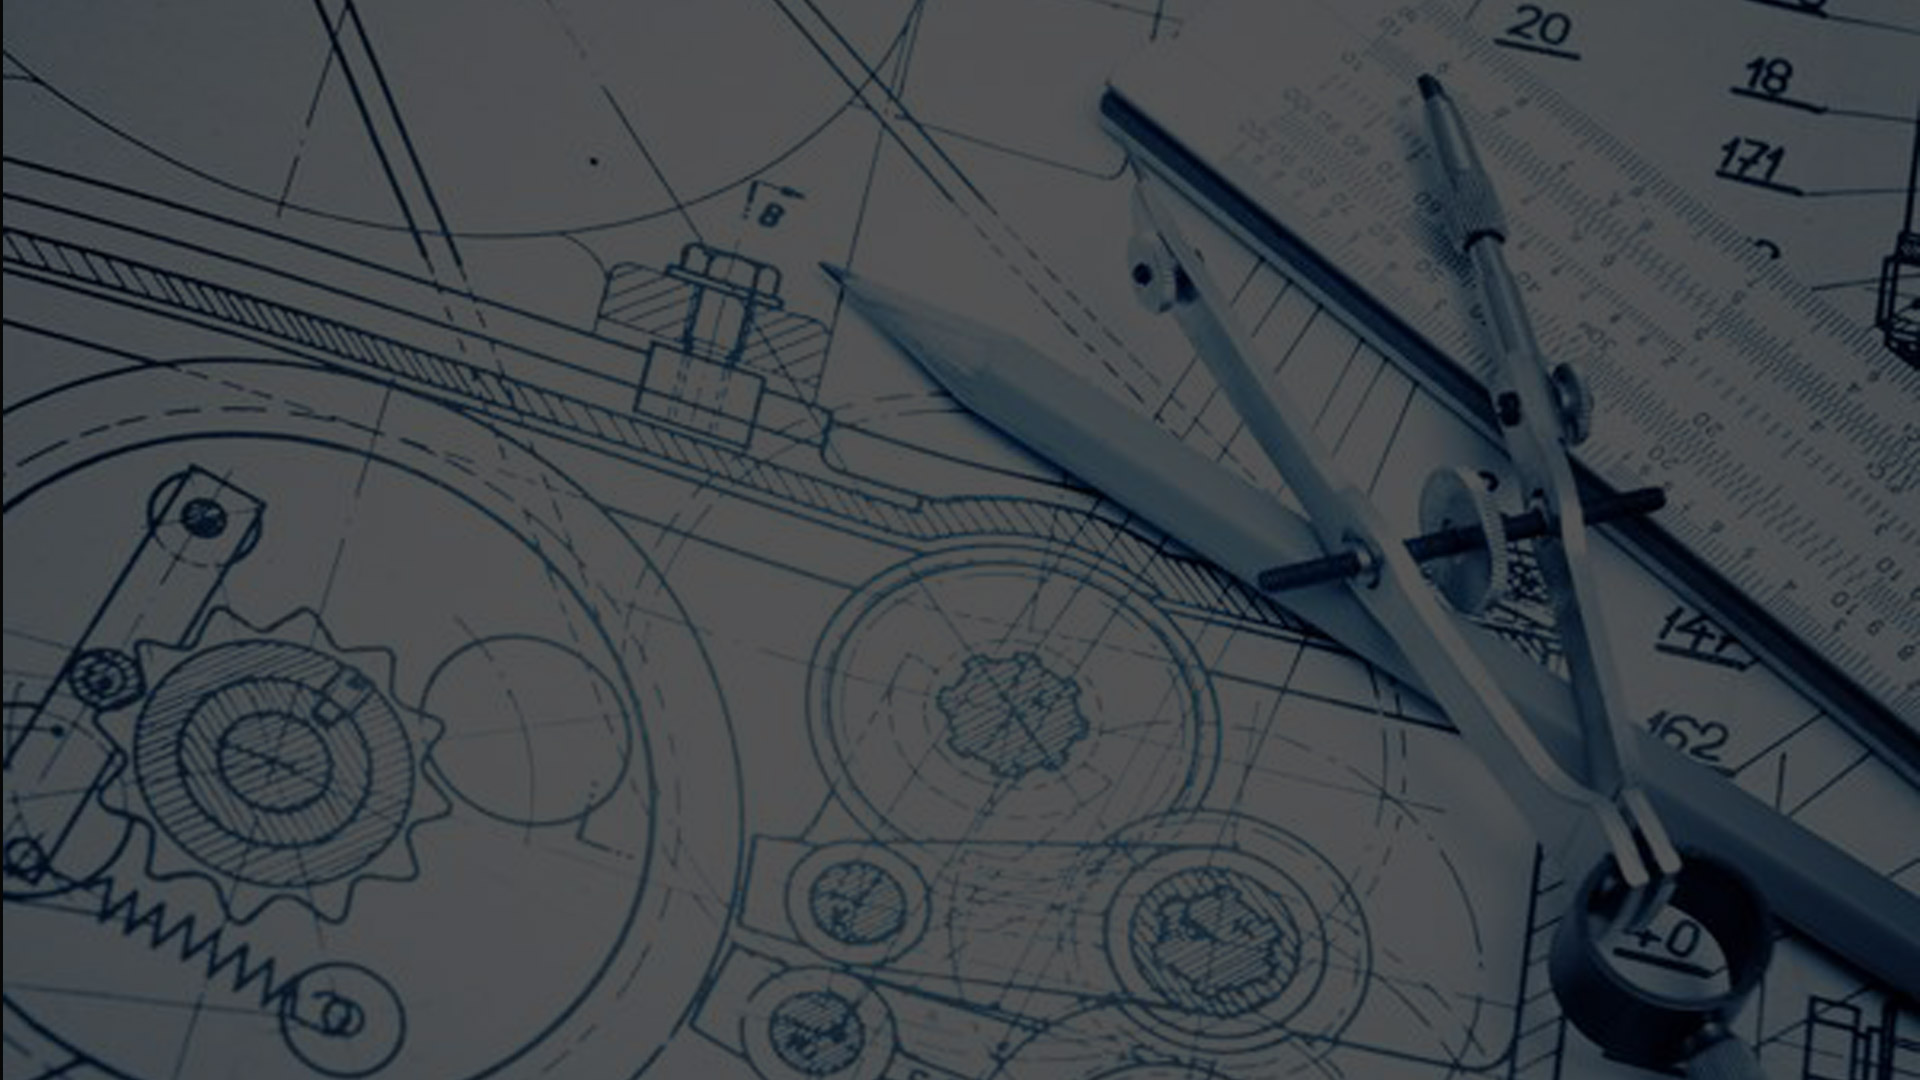 National Conference on Advances in Mechanical Engineering – 2018 (NCAME '18)